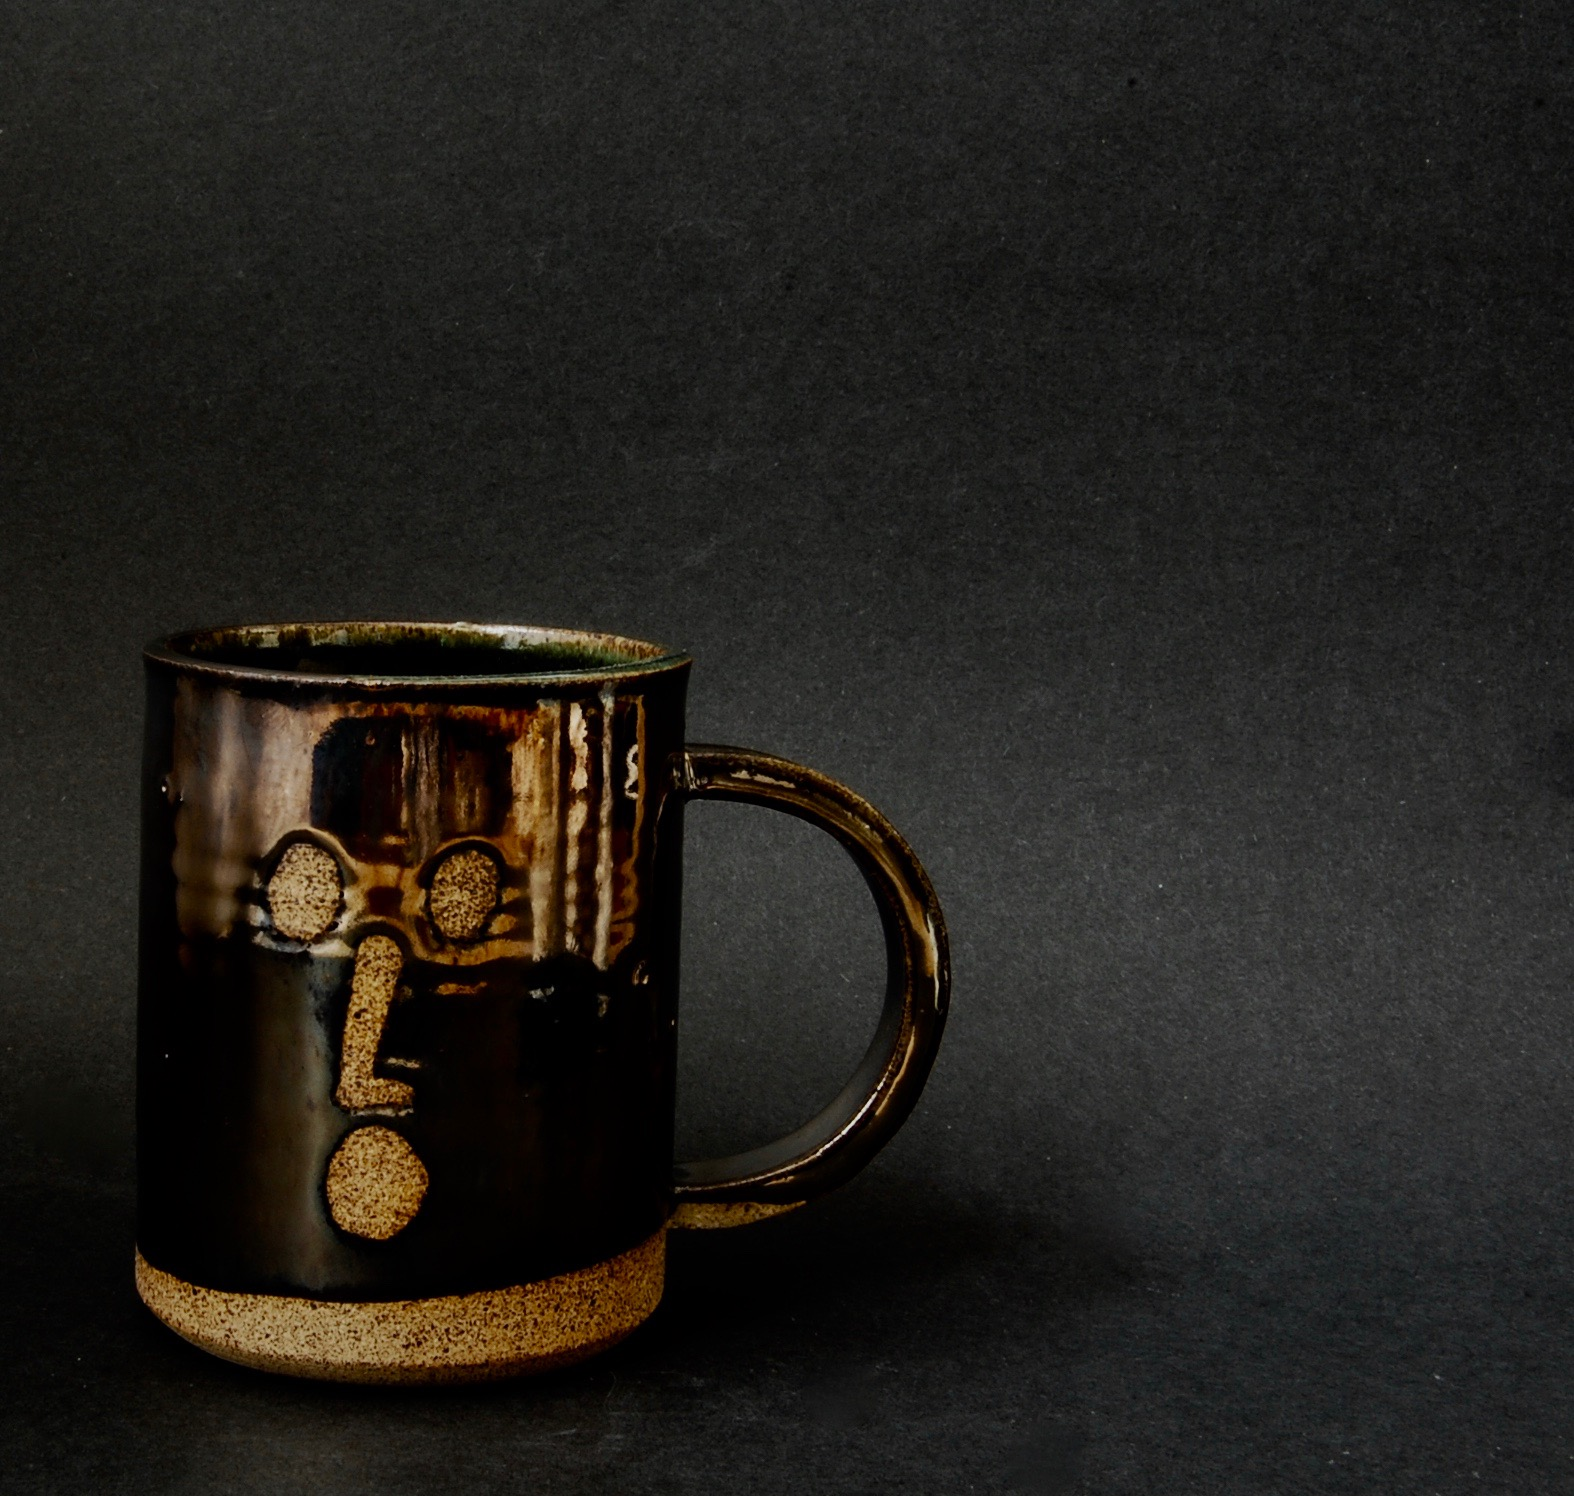 face mug 1 metallic.jpg